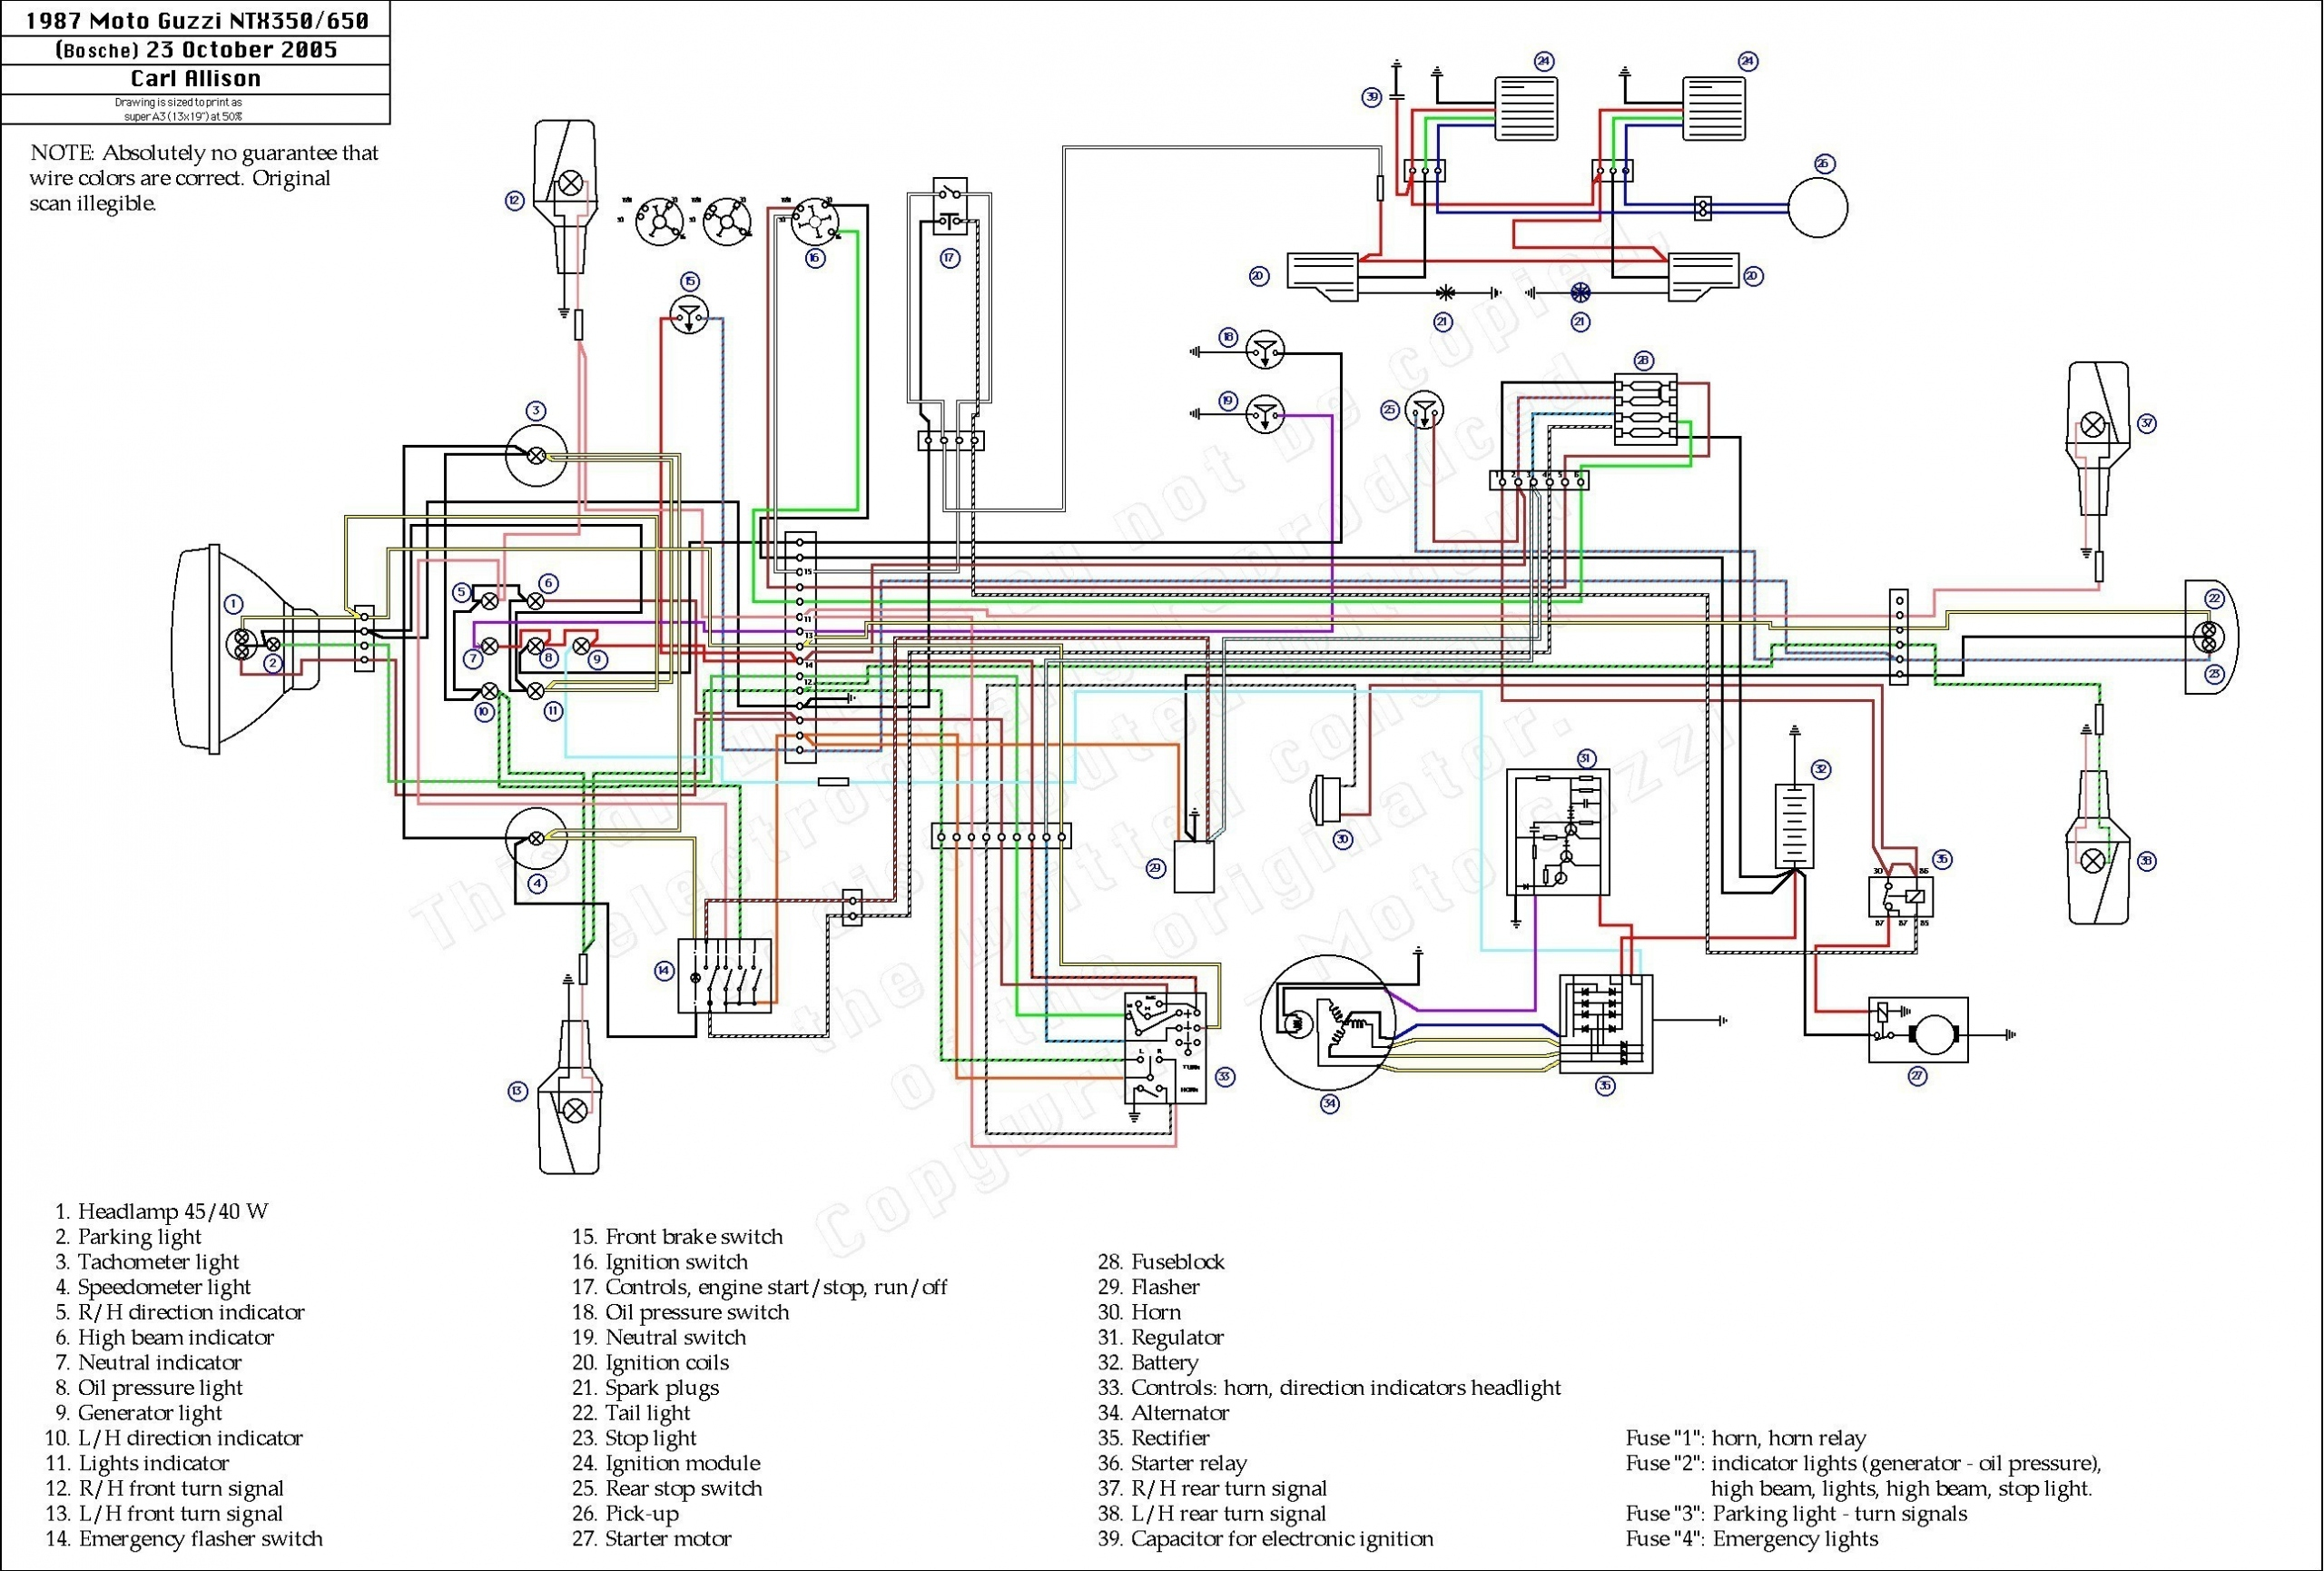 DIAGRAM] Wiring Diagram For 125 Quad FULL Version HD Quality 125 Quad -  ARDIAGRAM.USRDSICILIA.ITDiagram Database - usrdsicilia.it